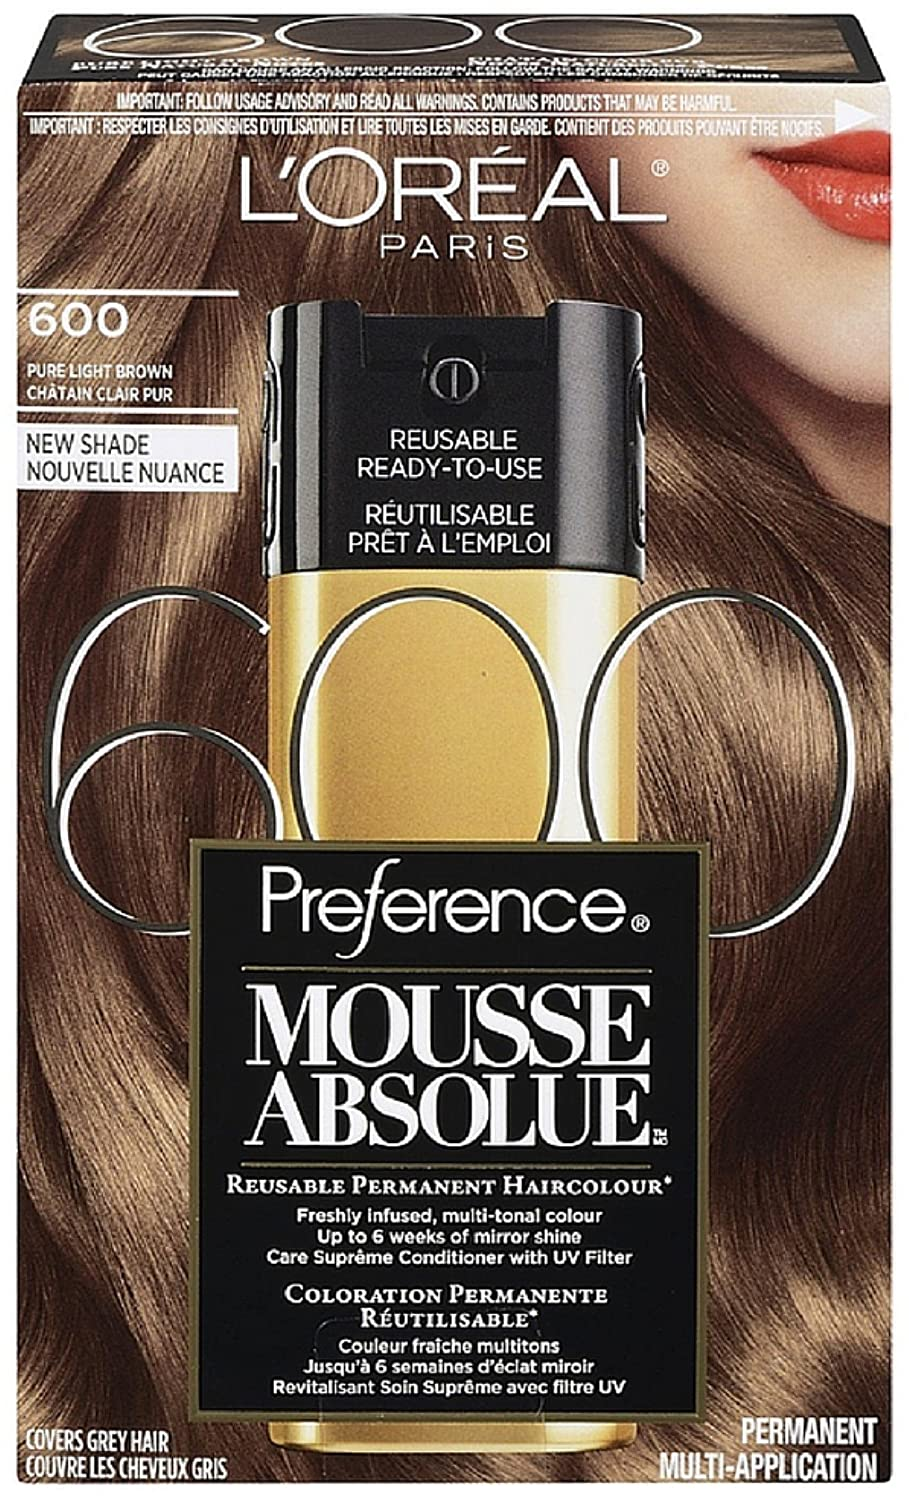 L'Oreal Paris Superior Preference Mousse Absolue Automatic Reusable Color, Pure Light Brown [600] 3.20 oz (Pack of 2)